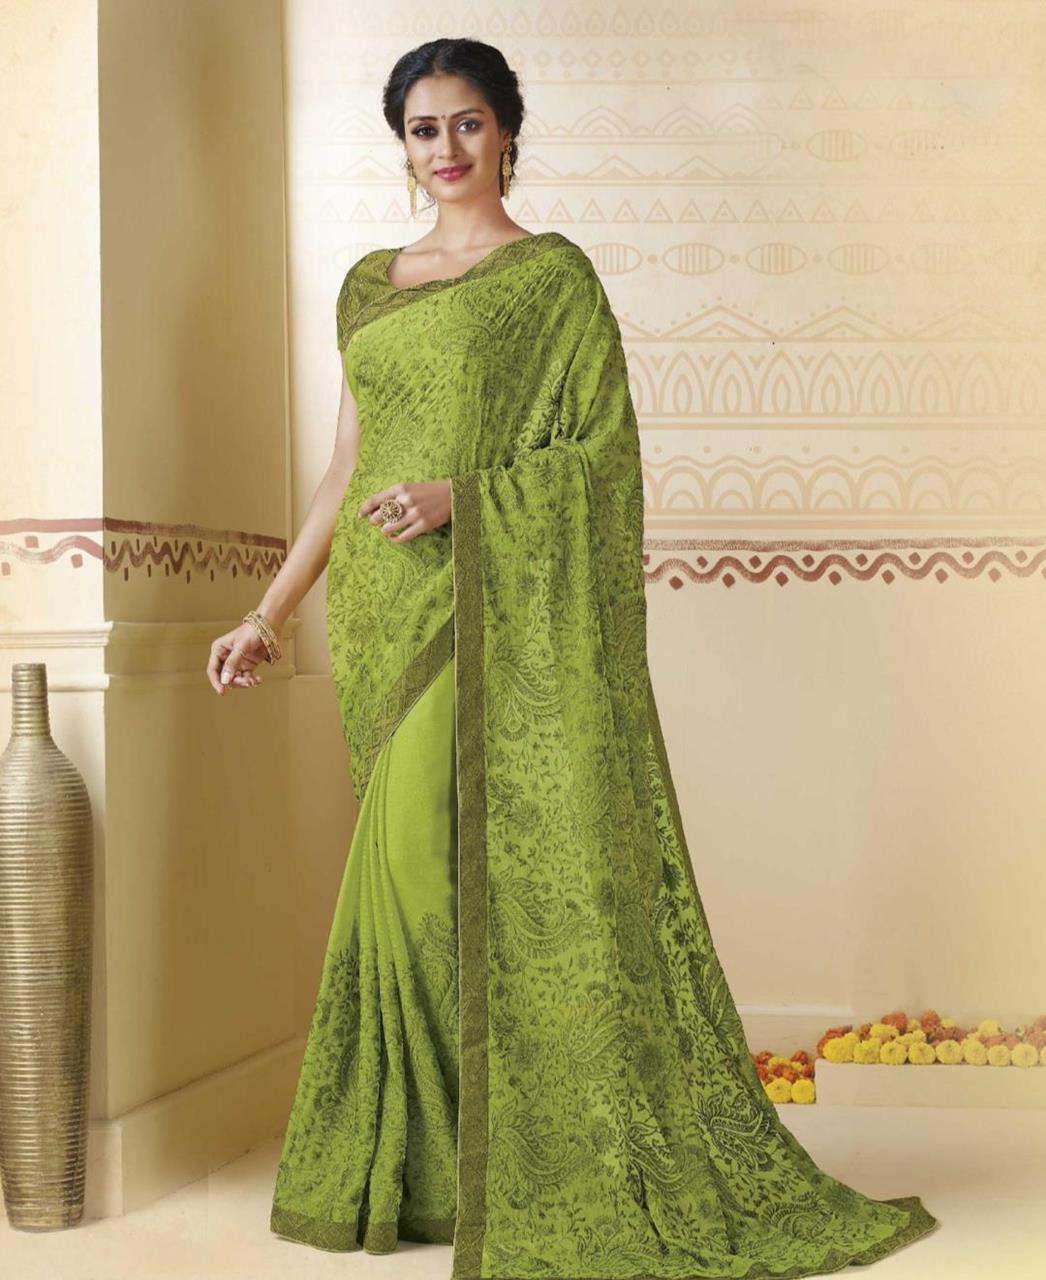 Embroidered Chiffon Saree in Light Green